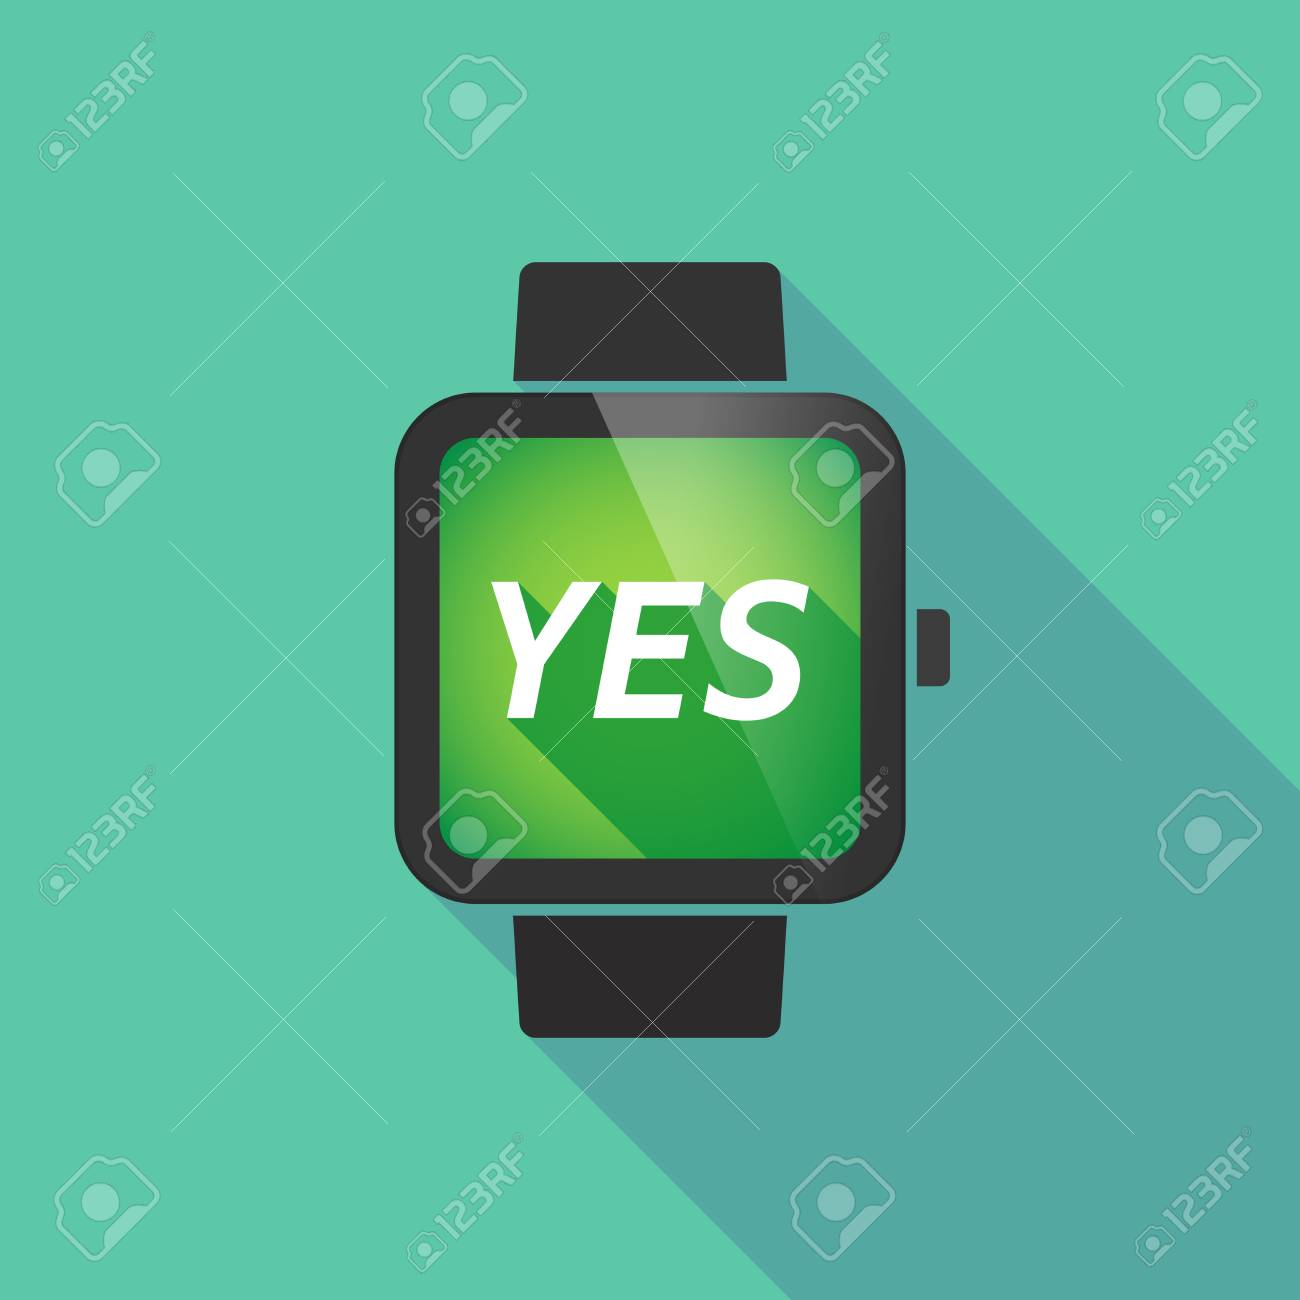 Illustration Of A Long Shadow Smart Watch With The Text Yes